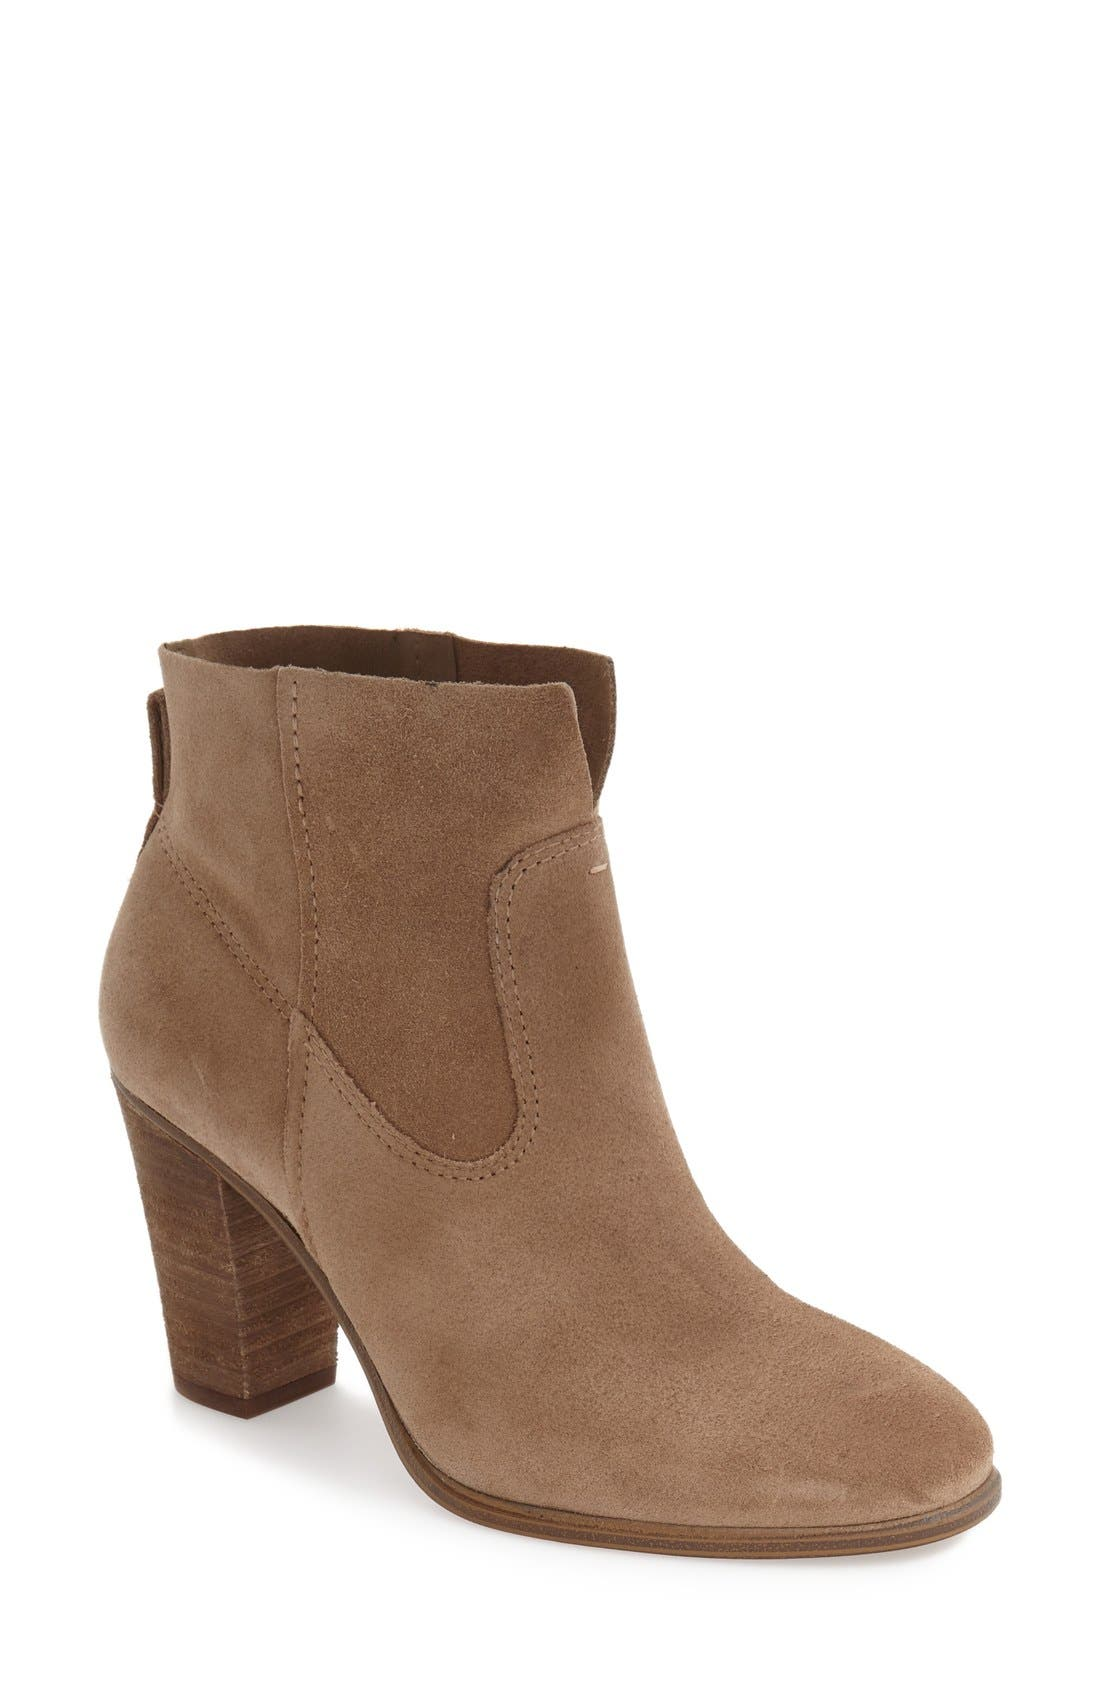 Alternate Image 1 Selected - Vince Camuto 'Feina' Bootie (Women) (Nordstrom Exclusive)